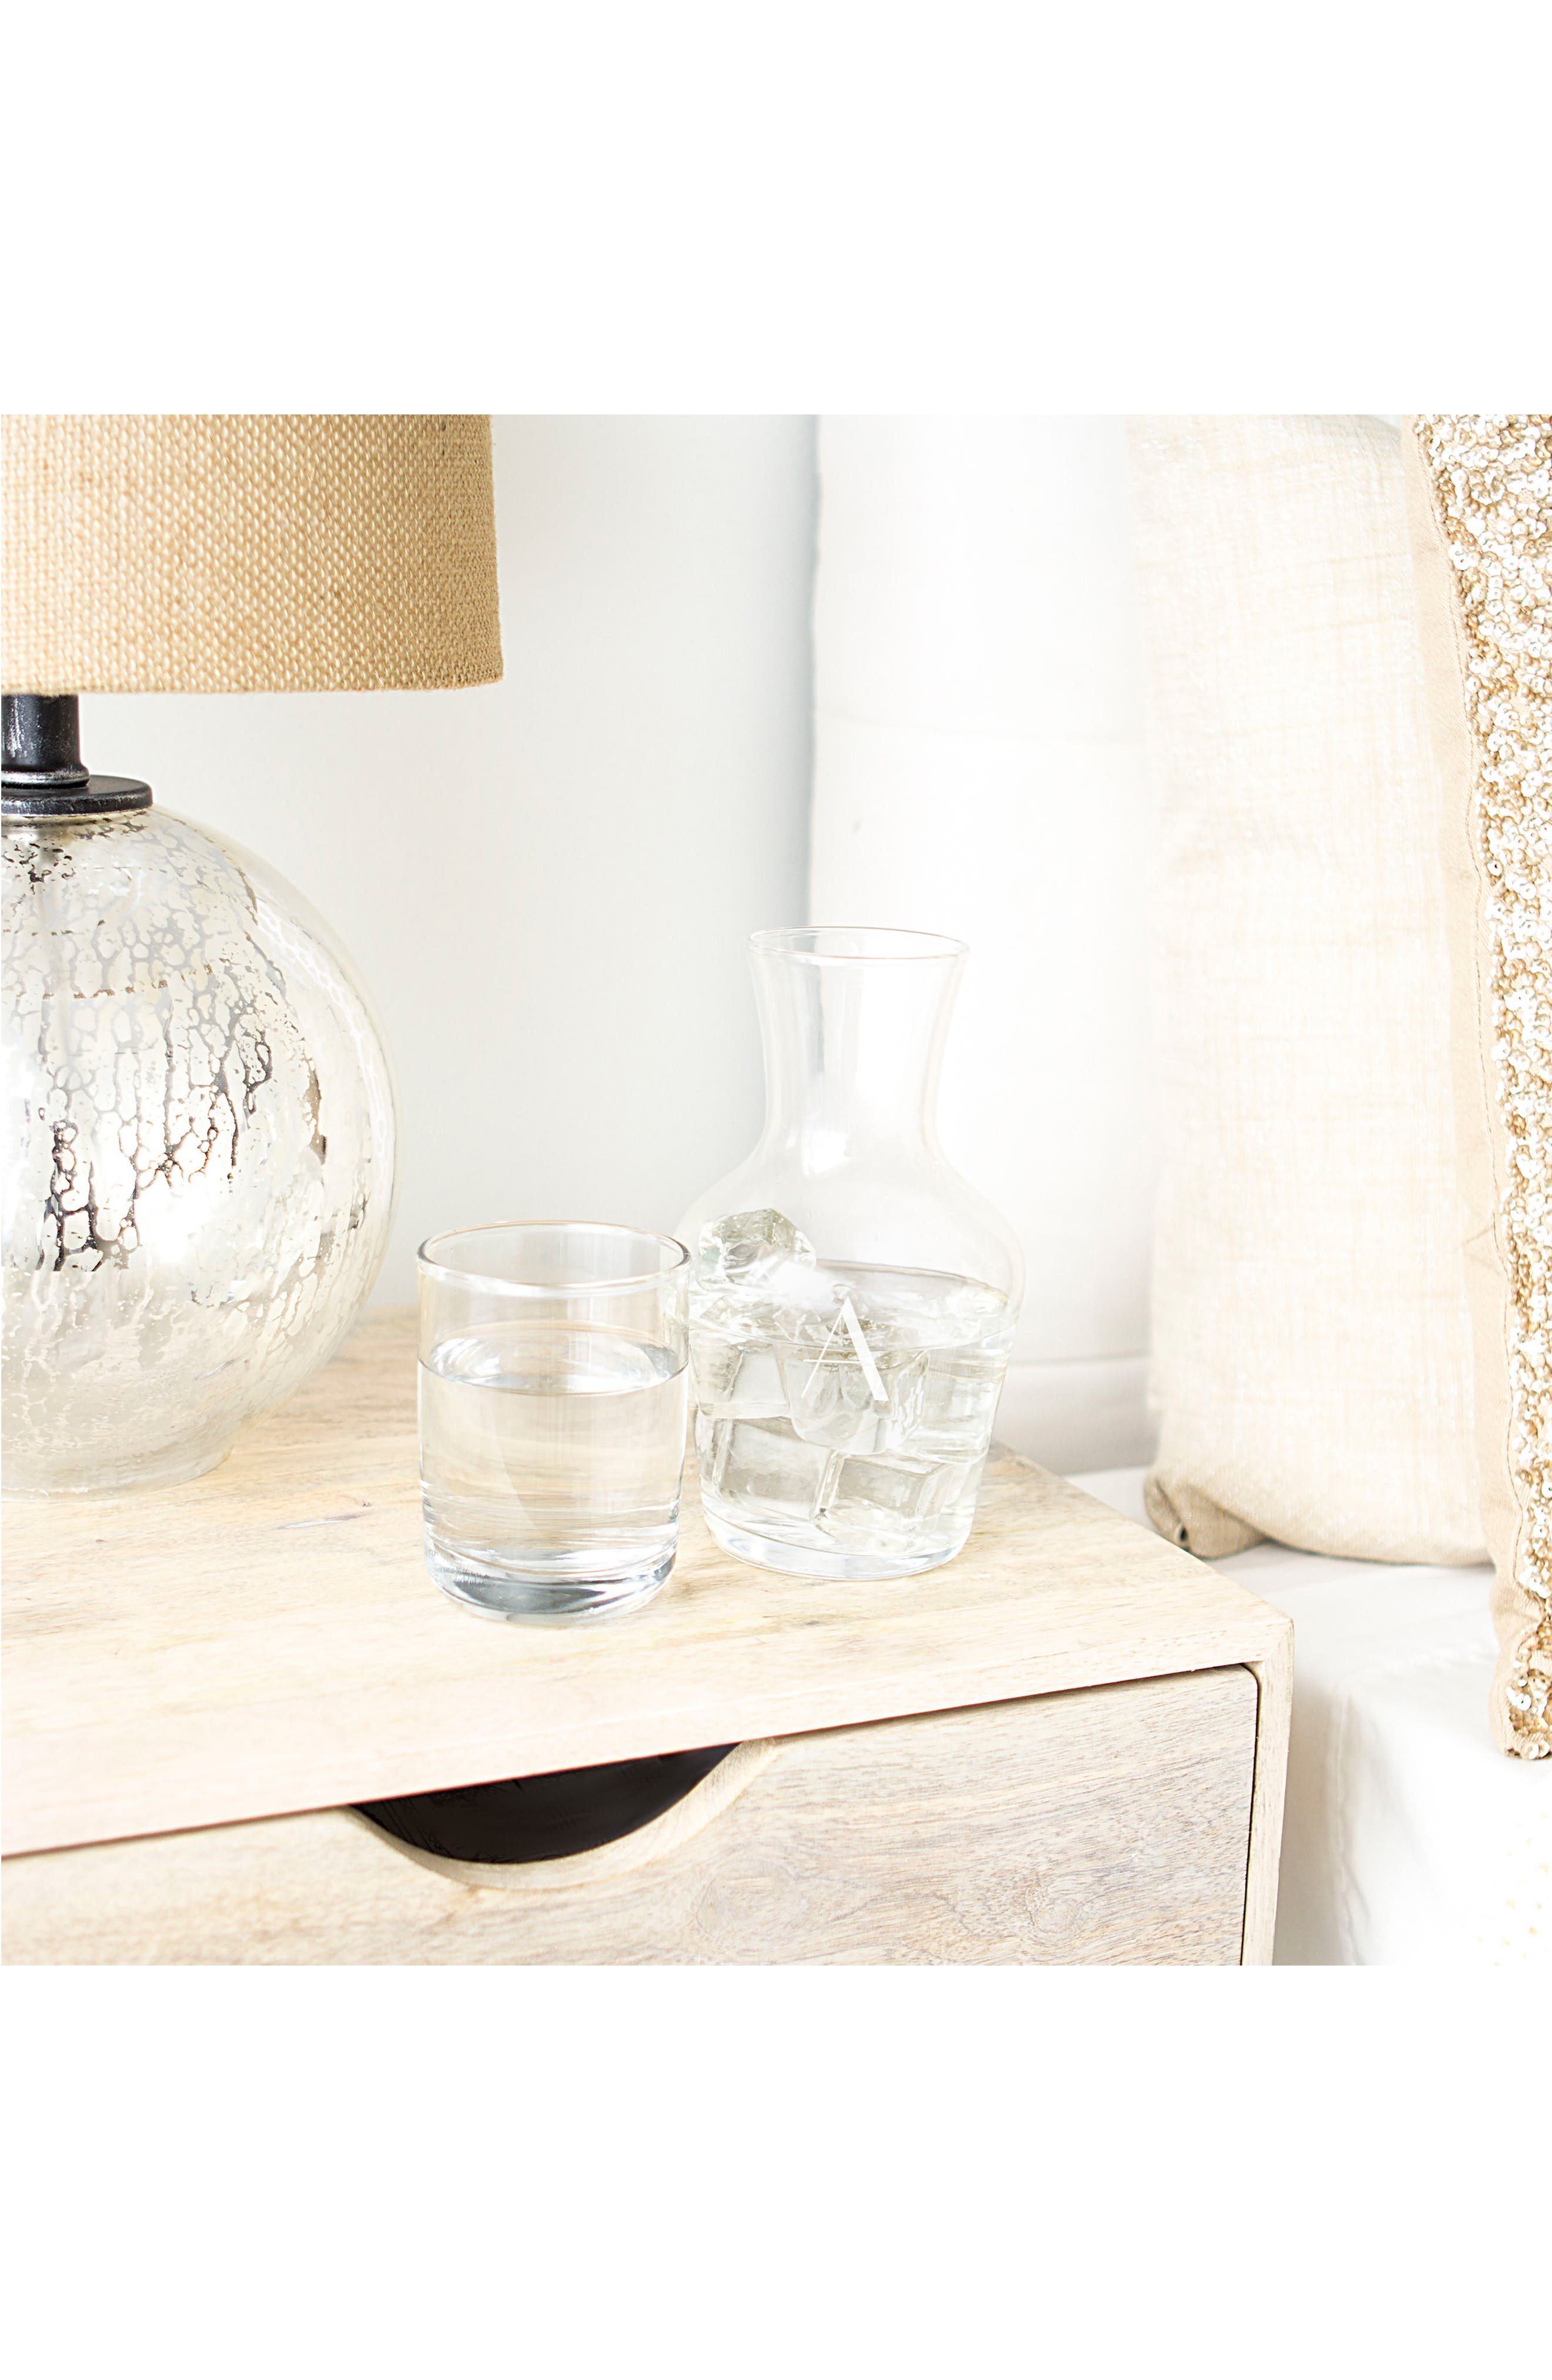 Bedside Water Carafe & Glass Set,                             Alternate thumbnail 28, color,